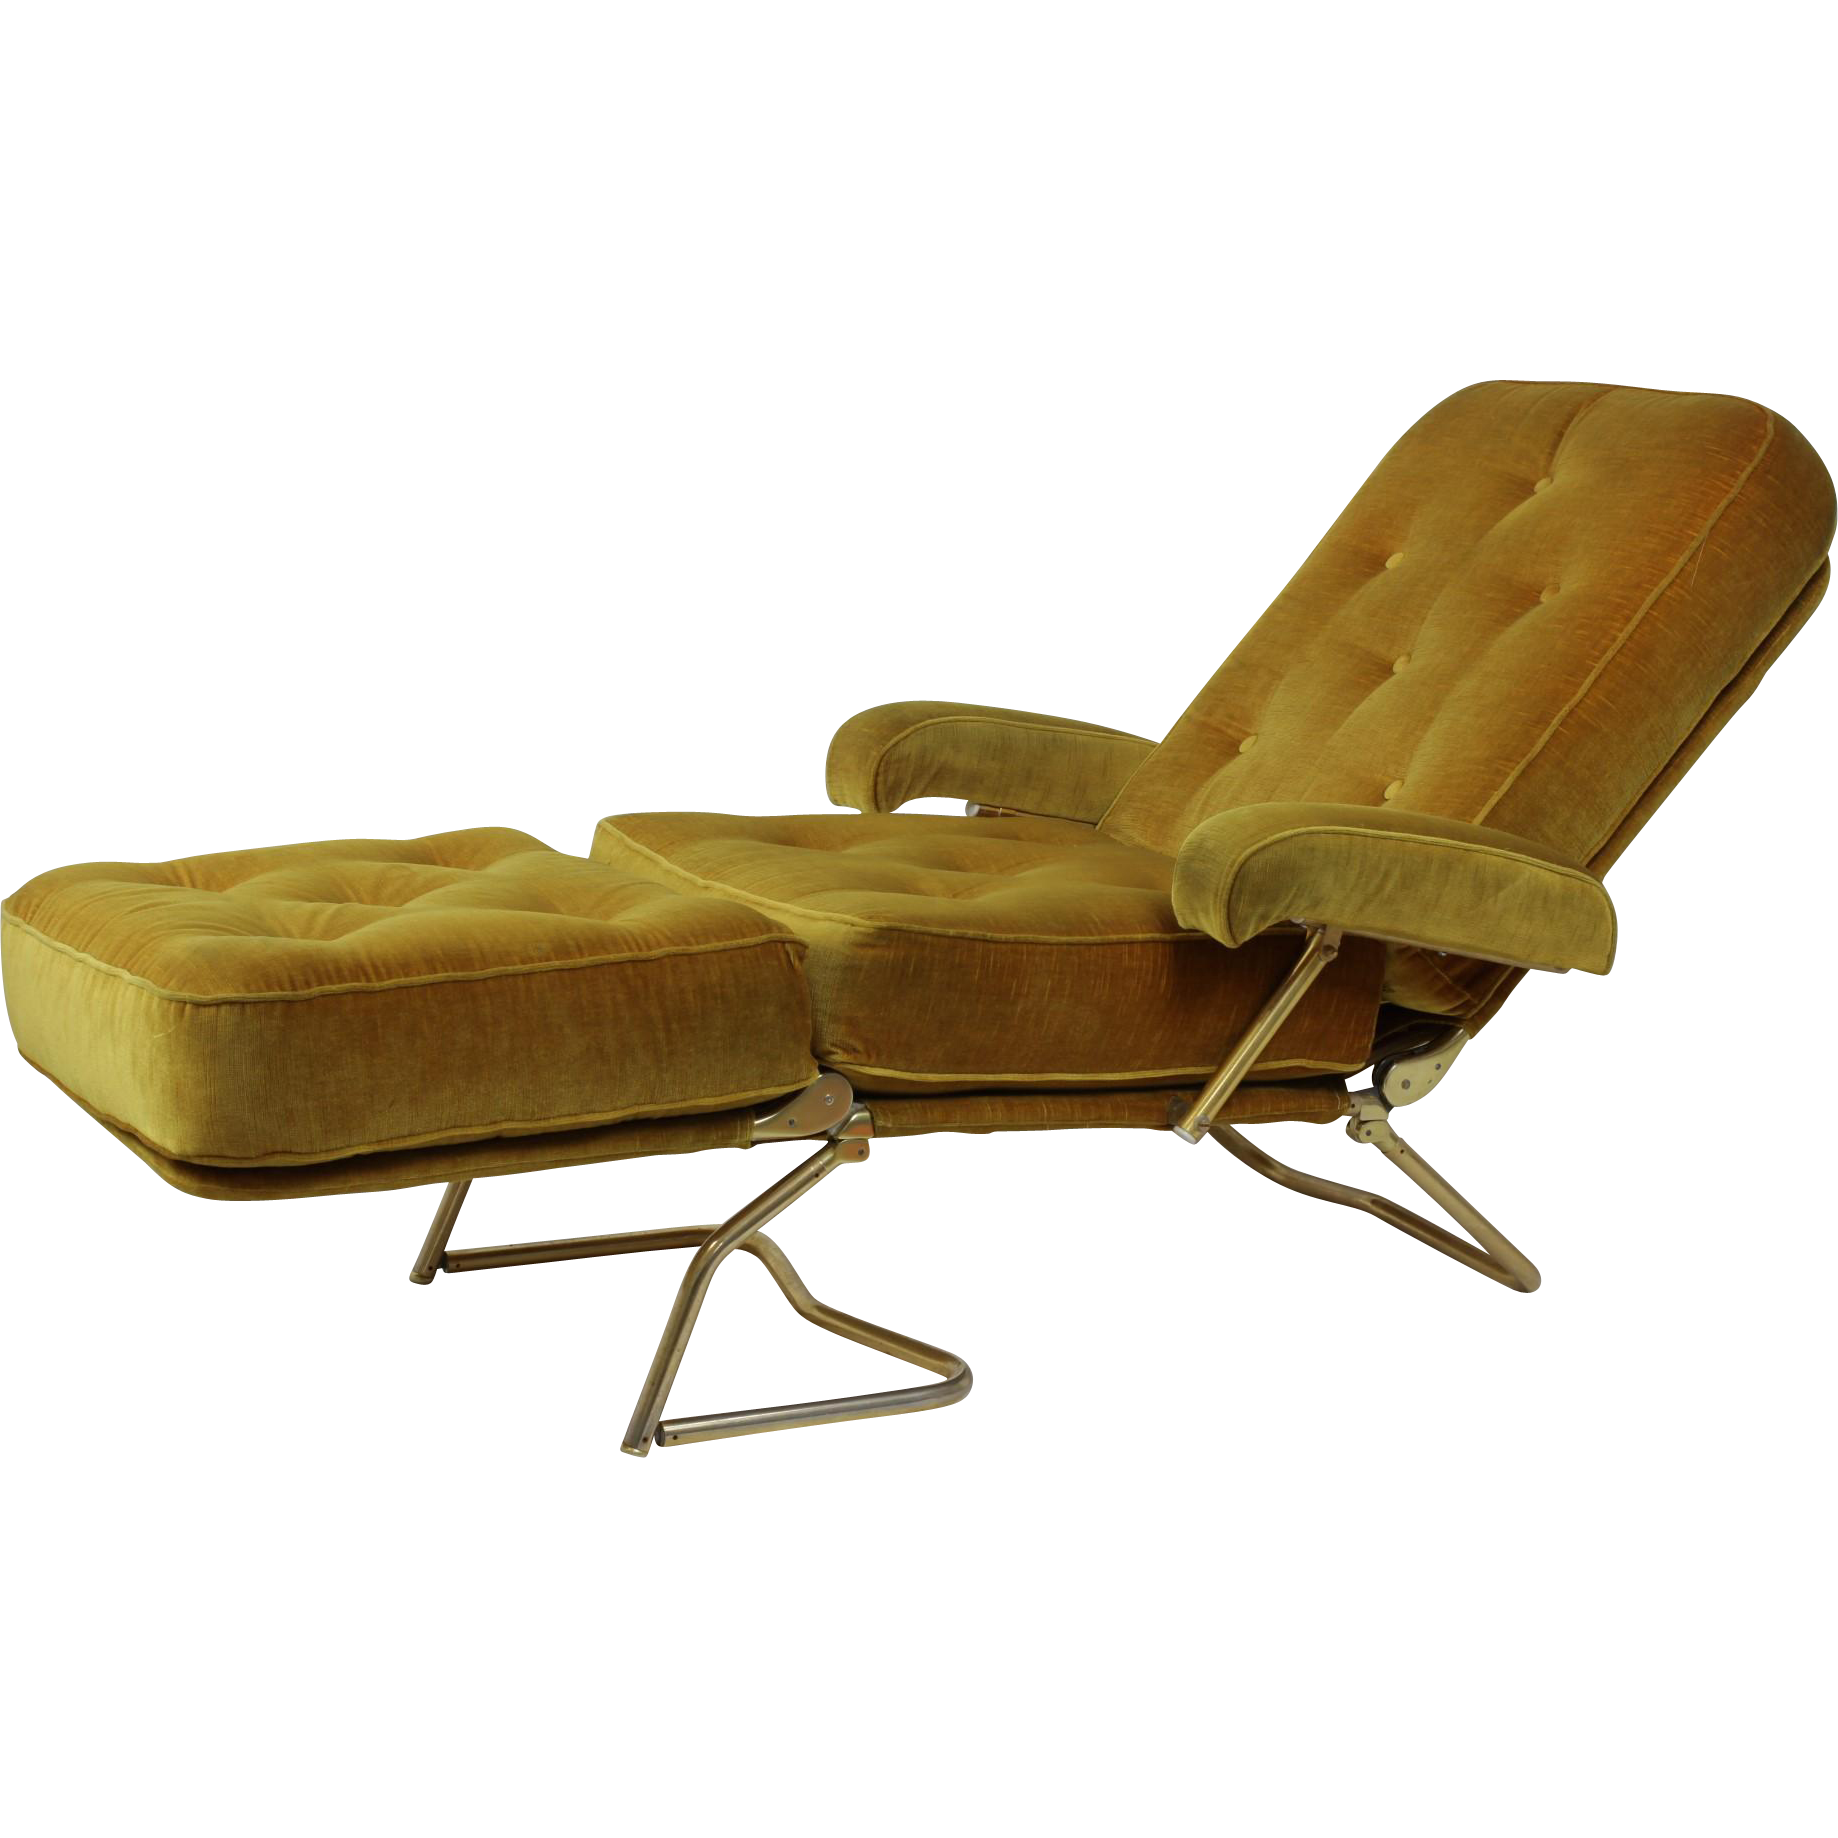 French Designer Chaise Longue  sc 1 st  Pinterest : designer chaise lounge - Sectionals, Sofas & Couches